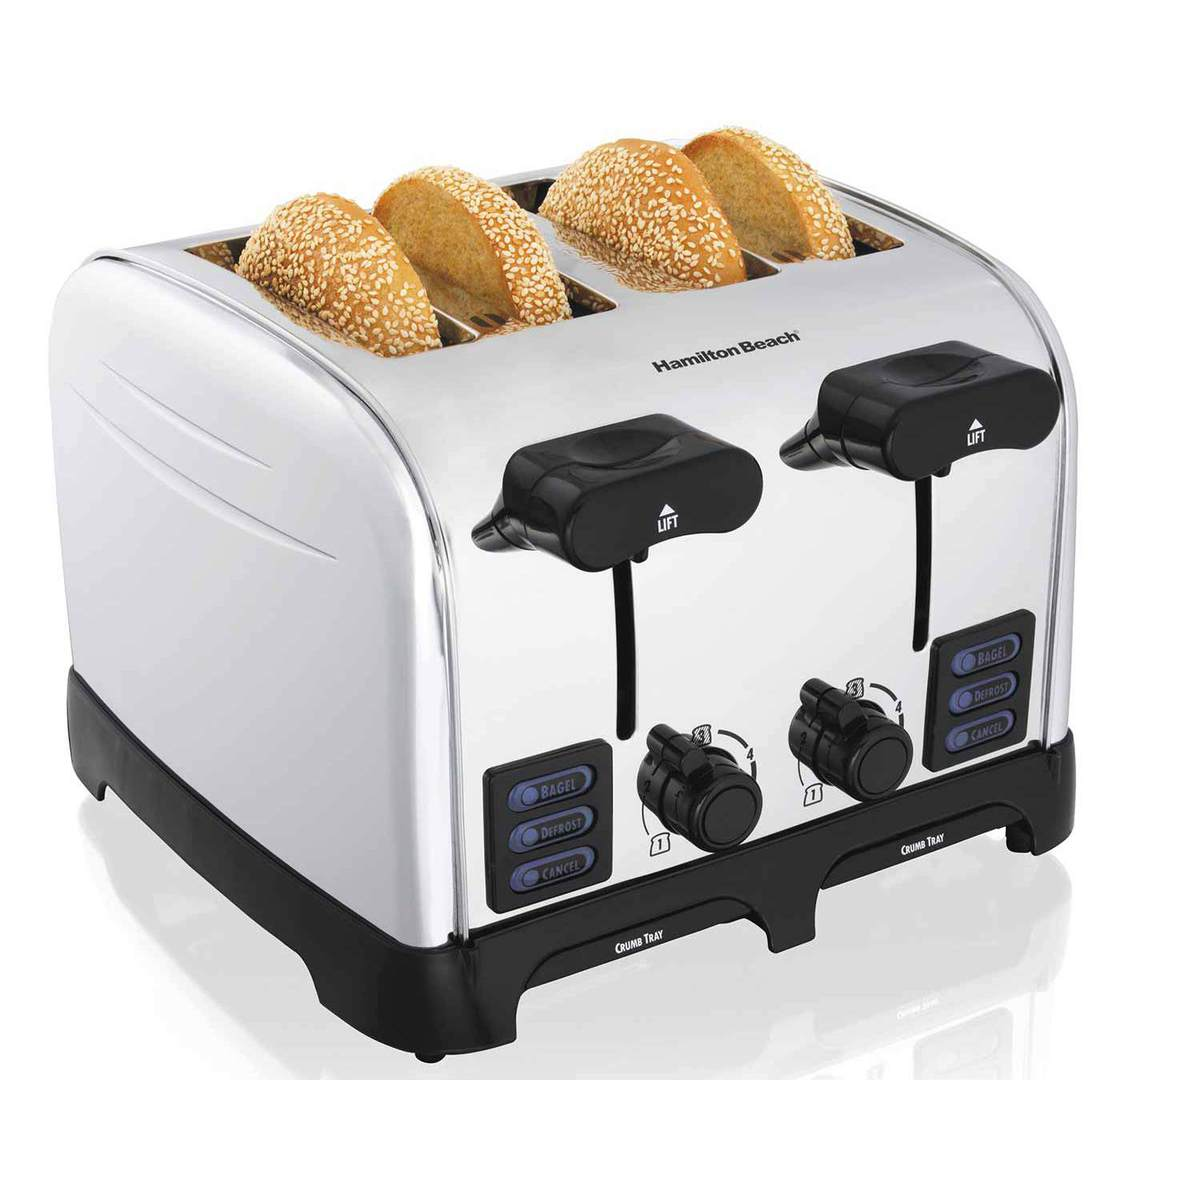 PerfectToast Chrome 4 Slice Toaster (24601)